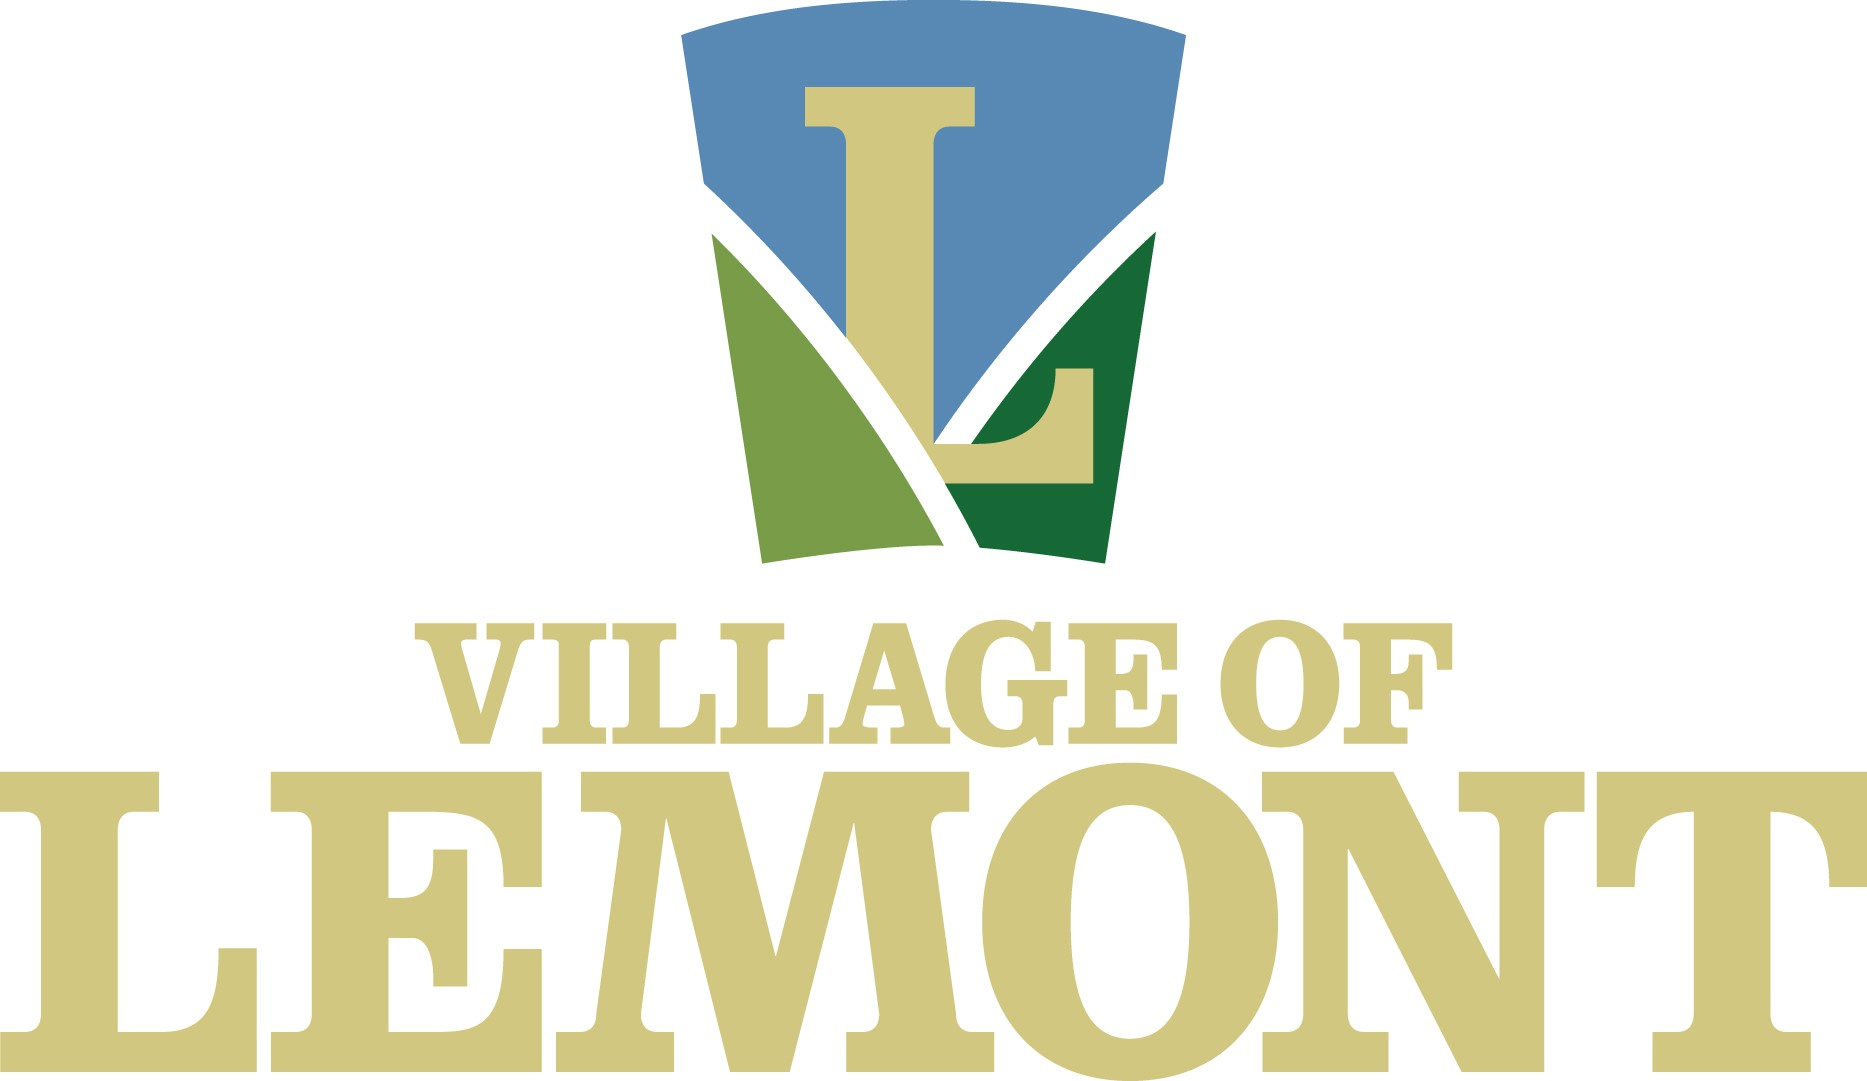 Village-of-Lemont.jpg